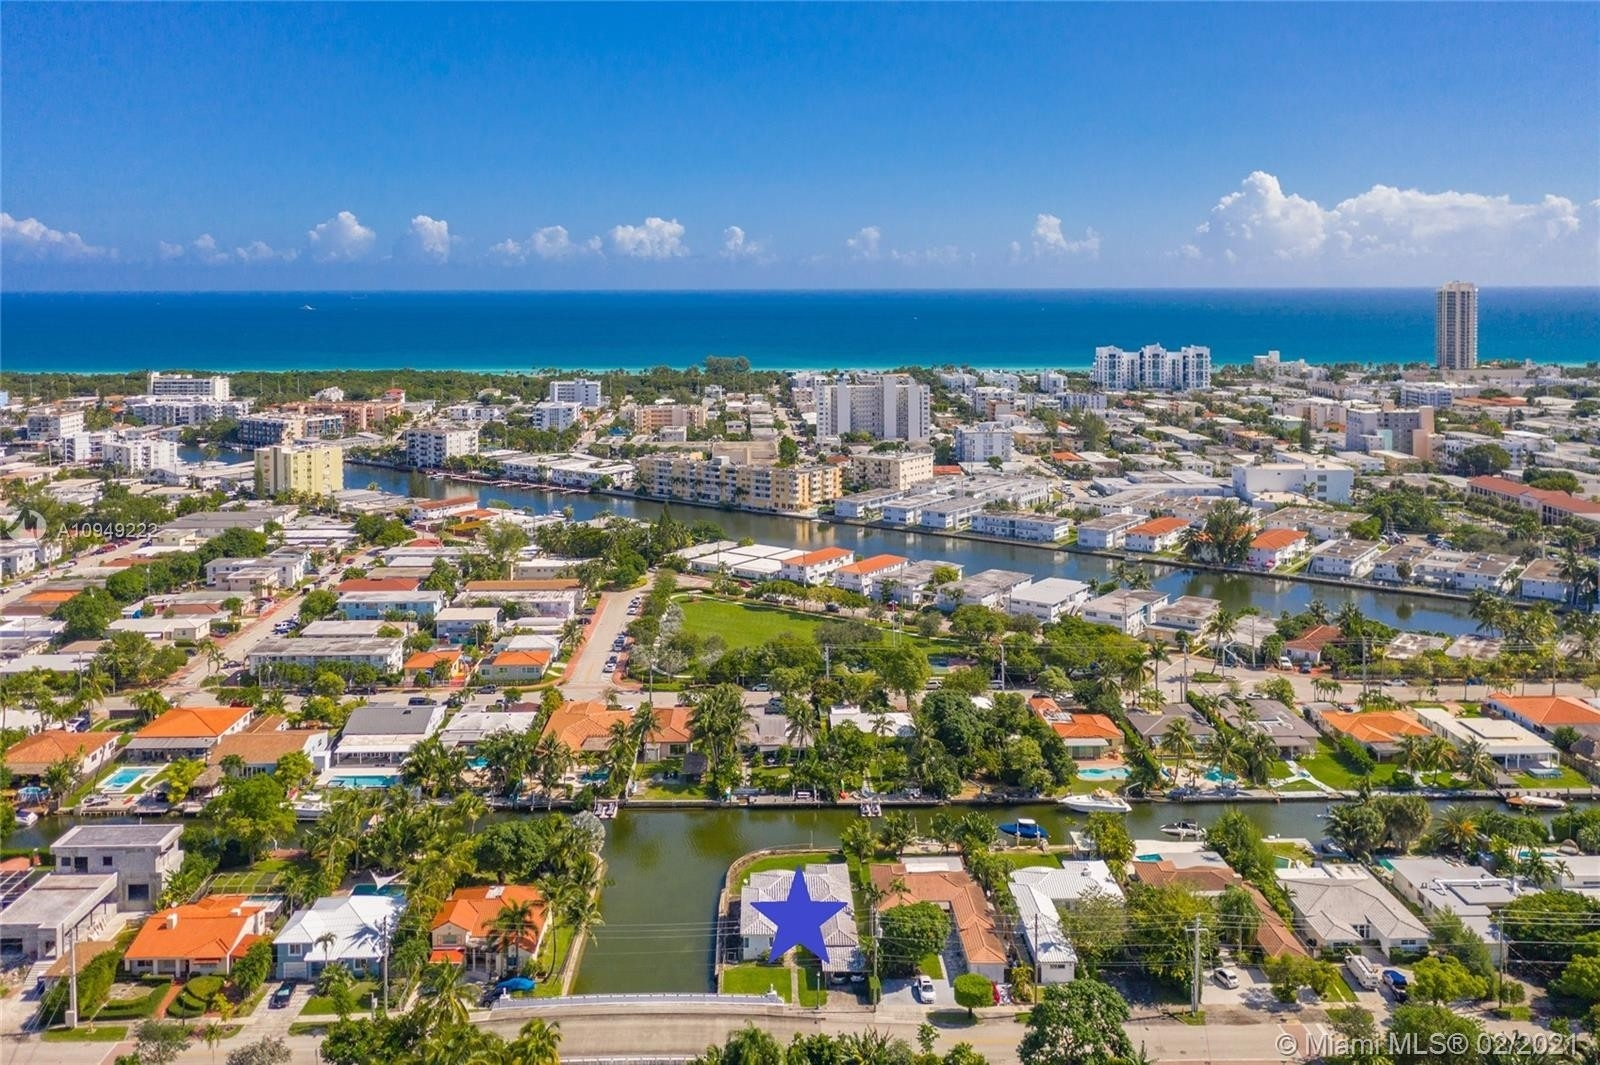 Vivienda unifamiliar por un Venta en Biscayne Point, Miami Beach, FL 33141